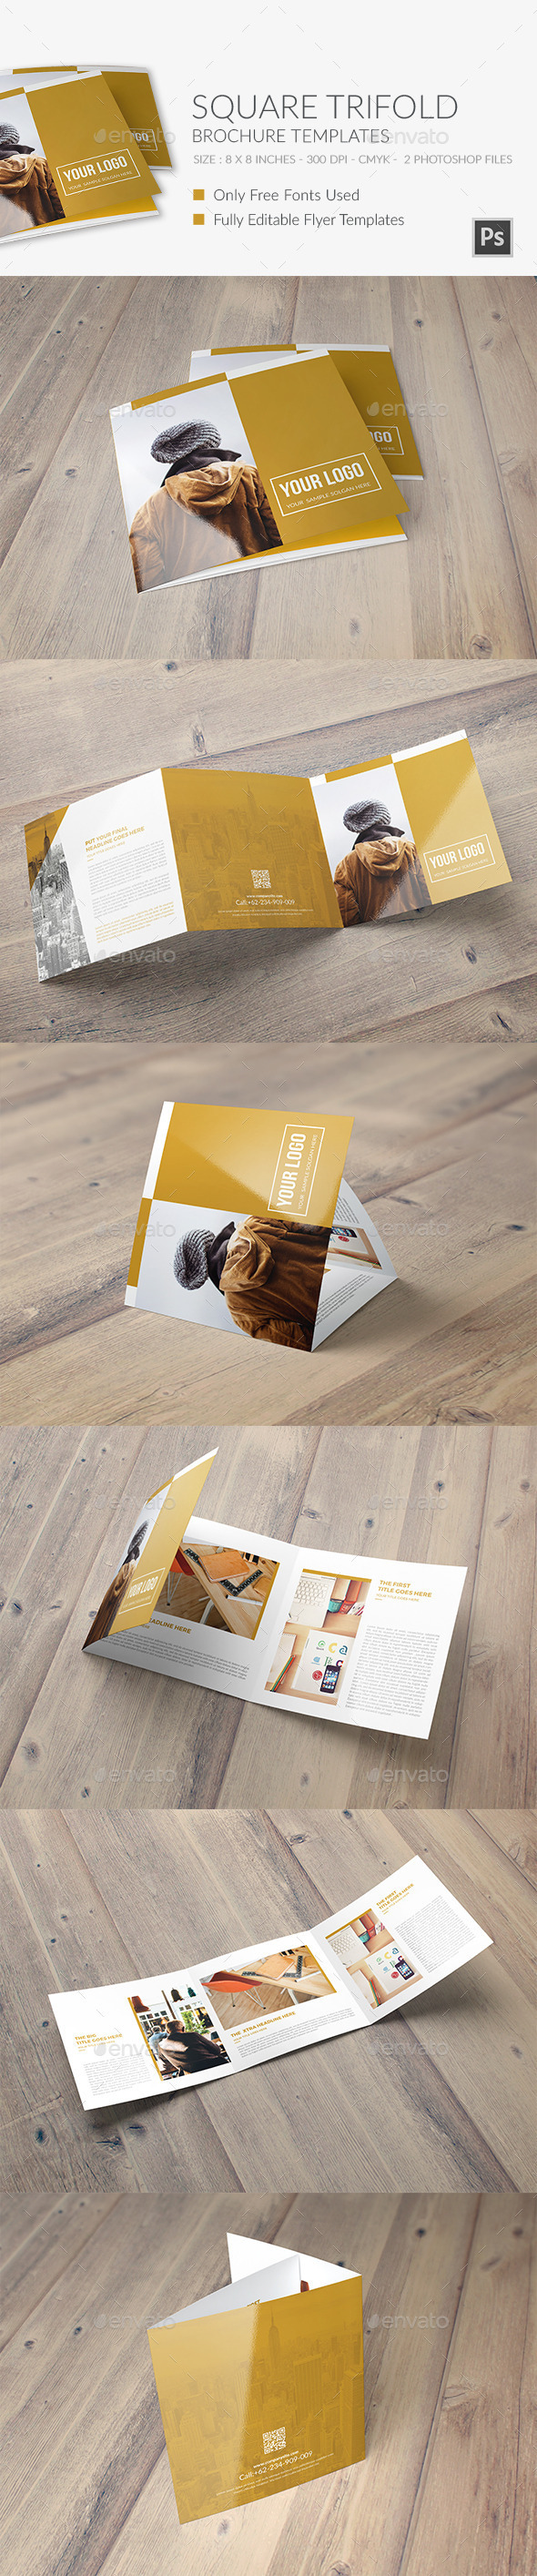 Square Trifold Brochure 4 - Brochures Print Templates